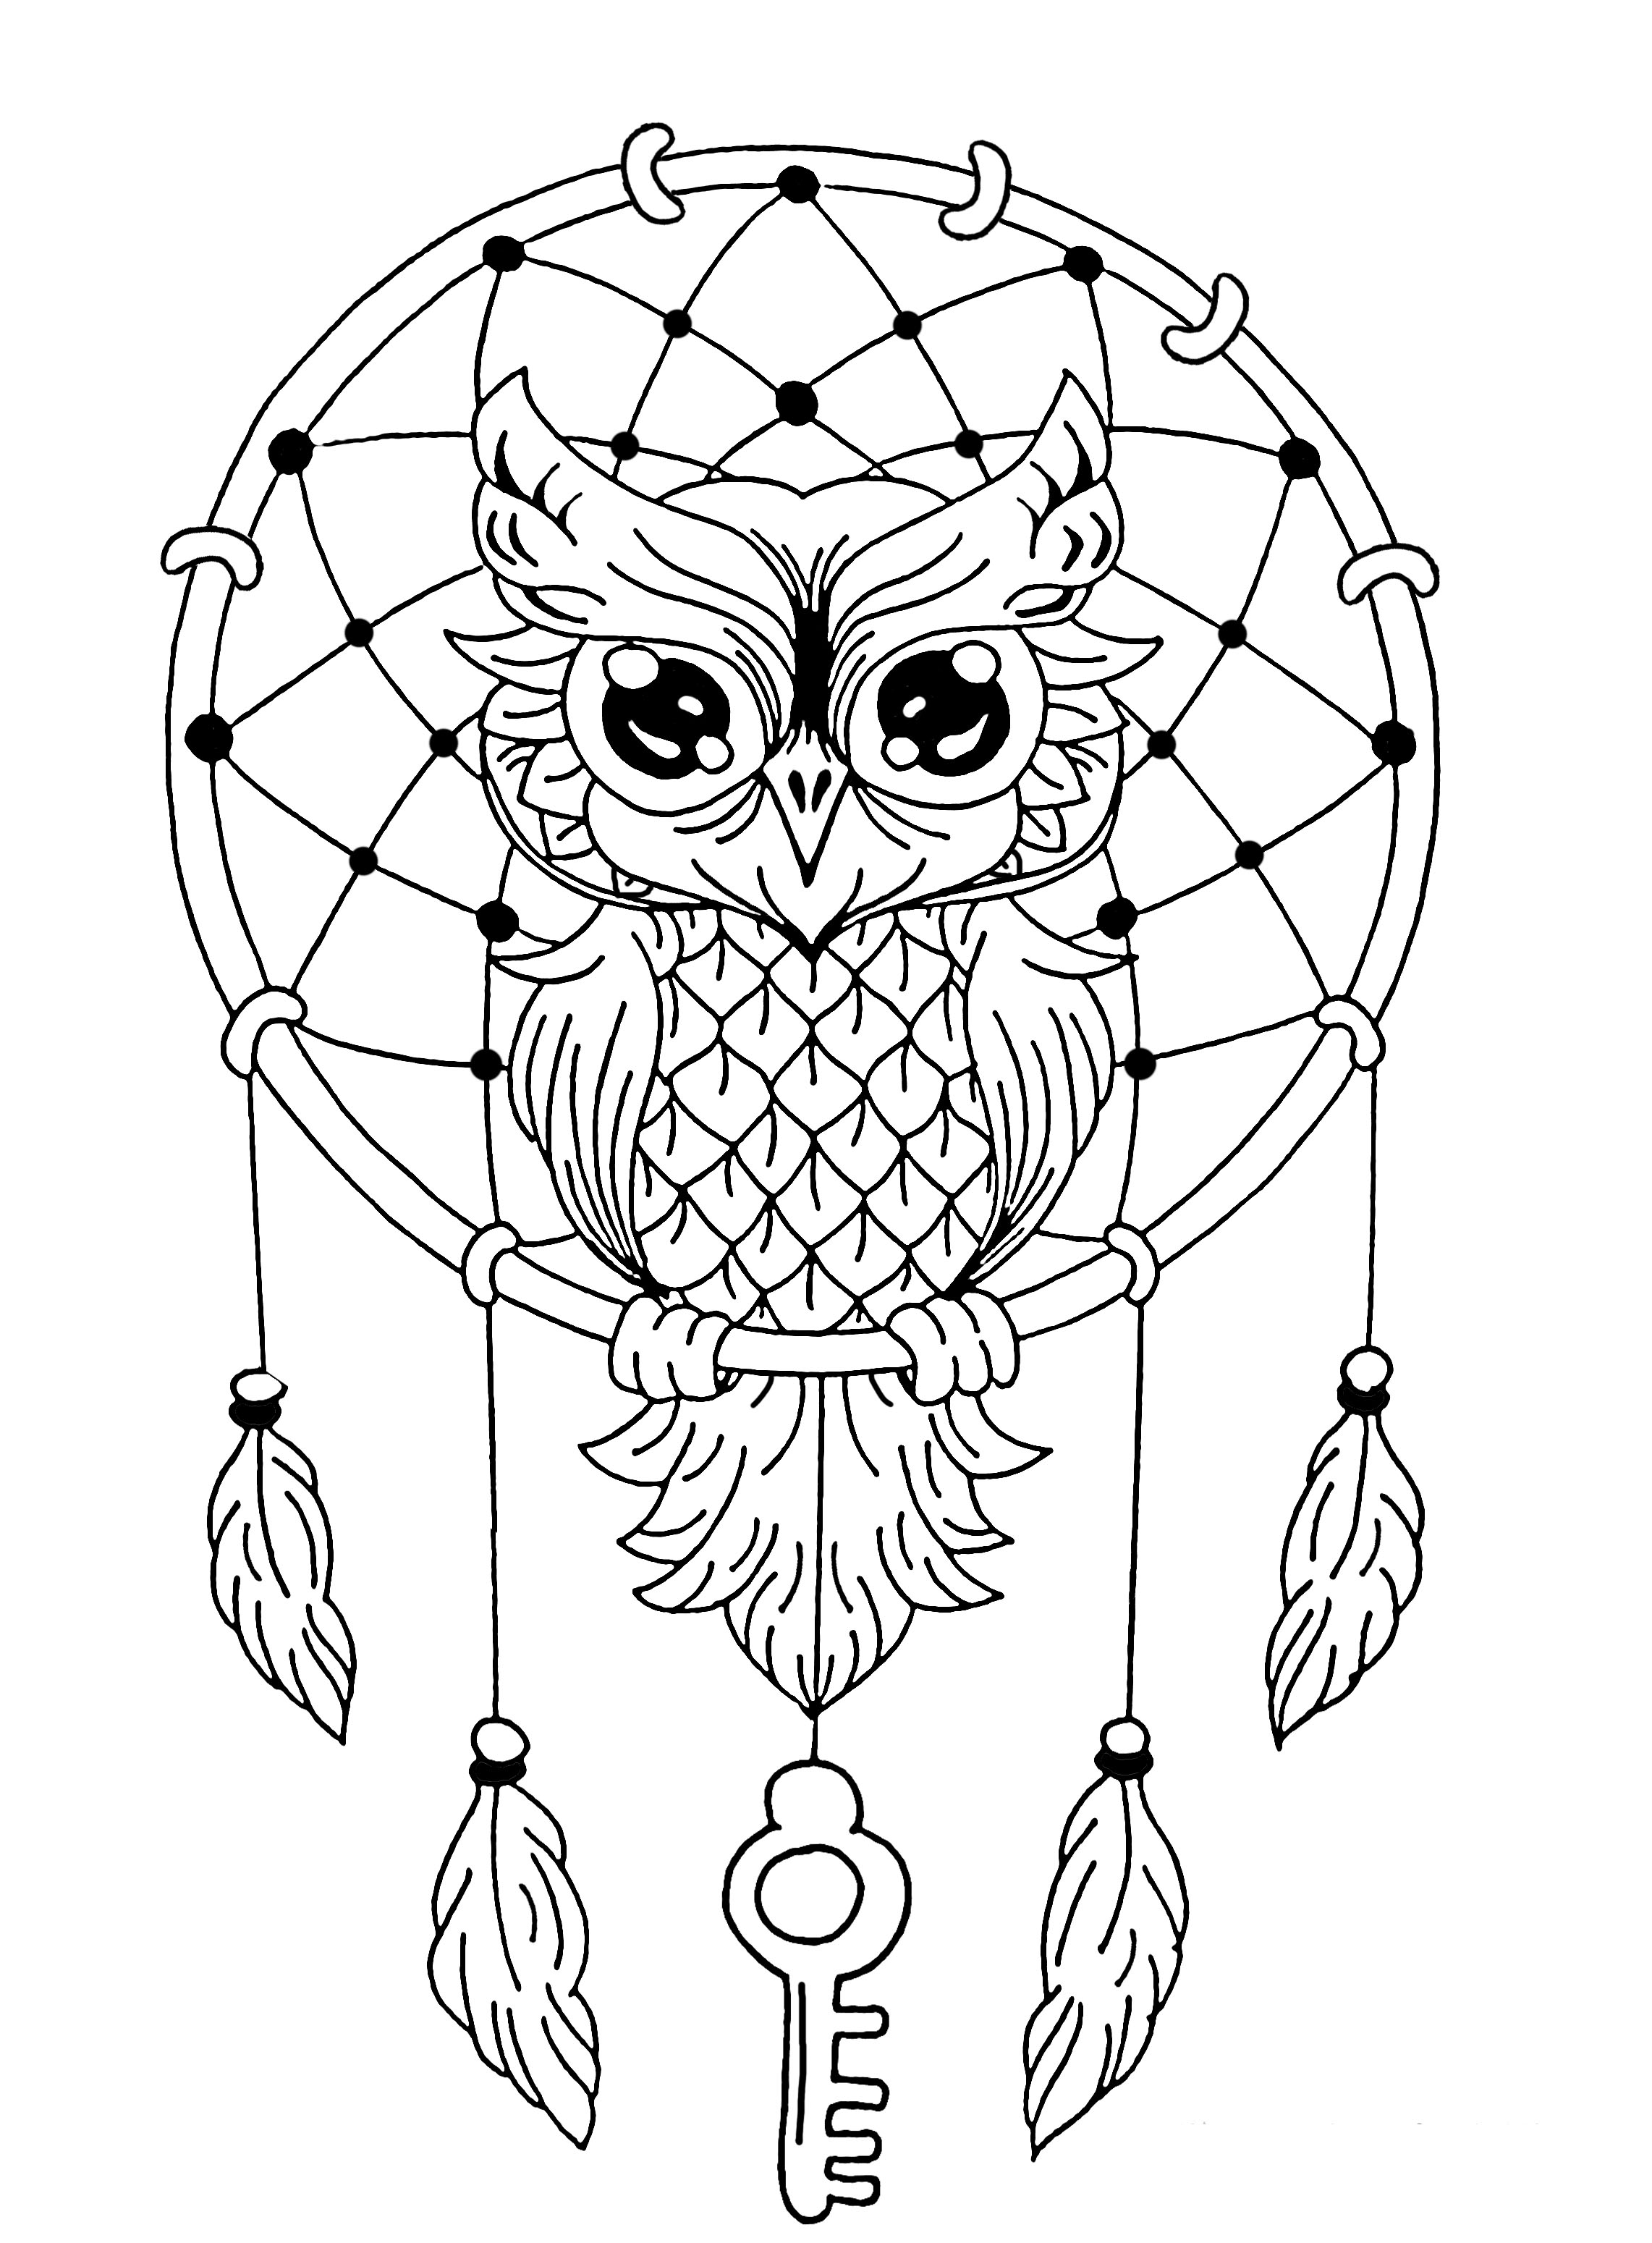 2283x3099 Native American Mandala With Bows And Arrows Coloring Pages